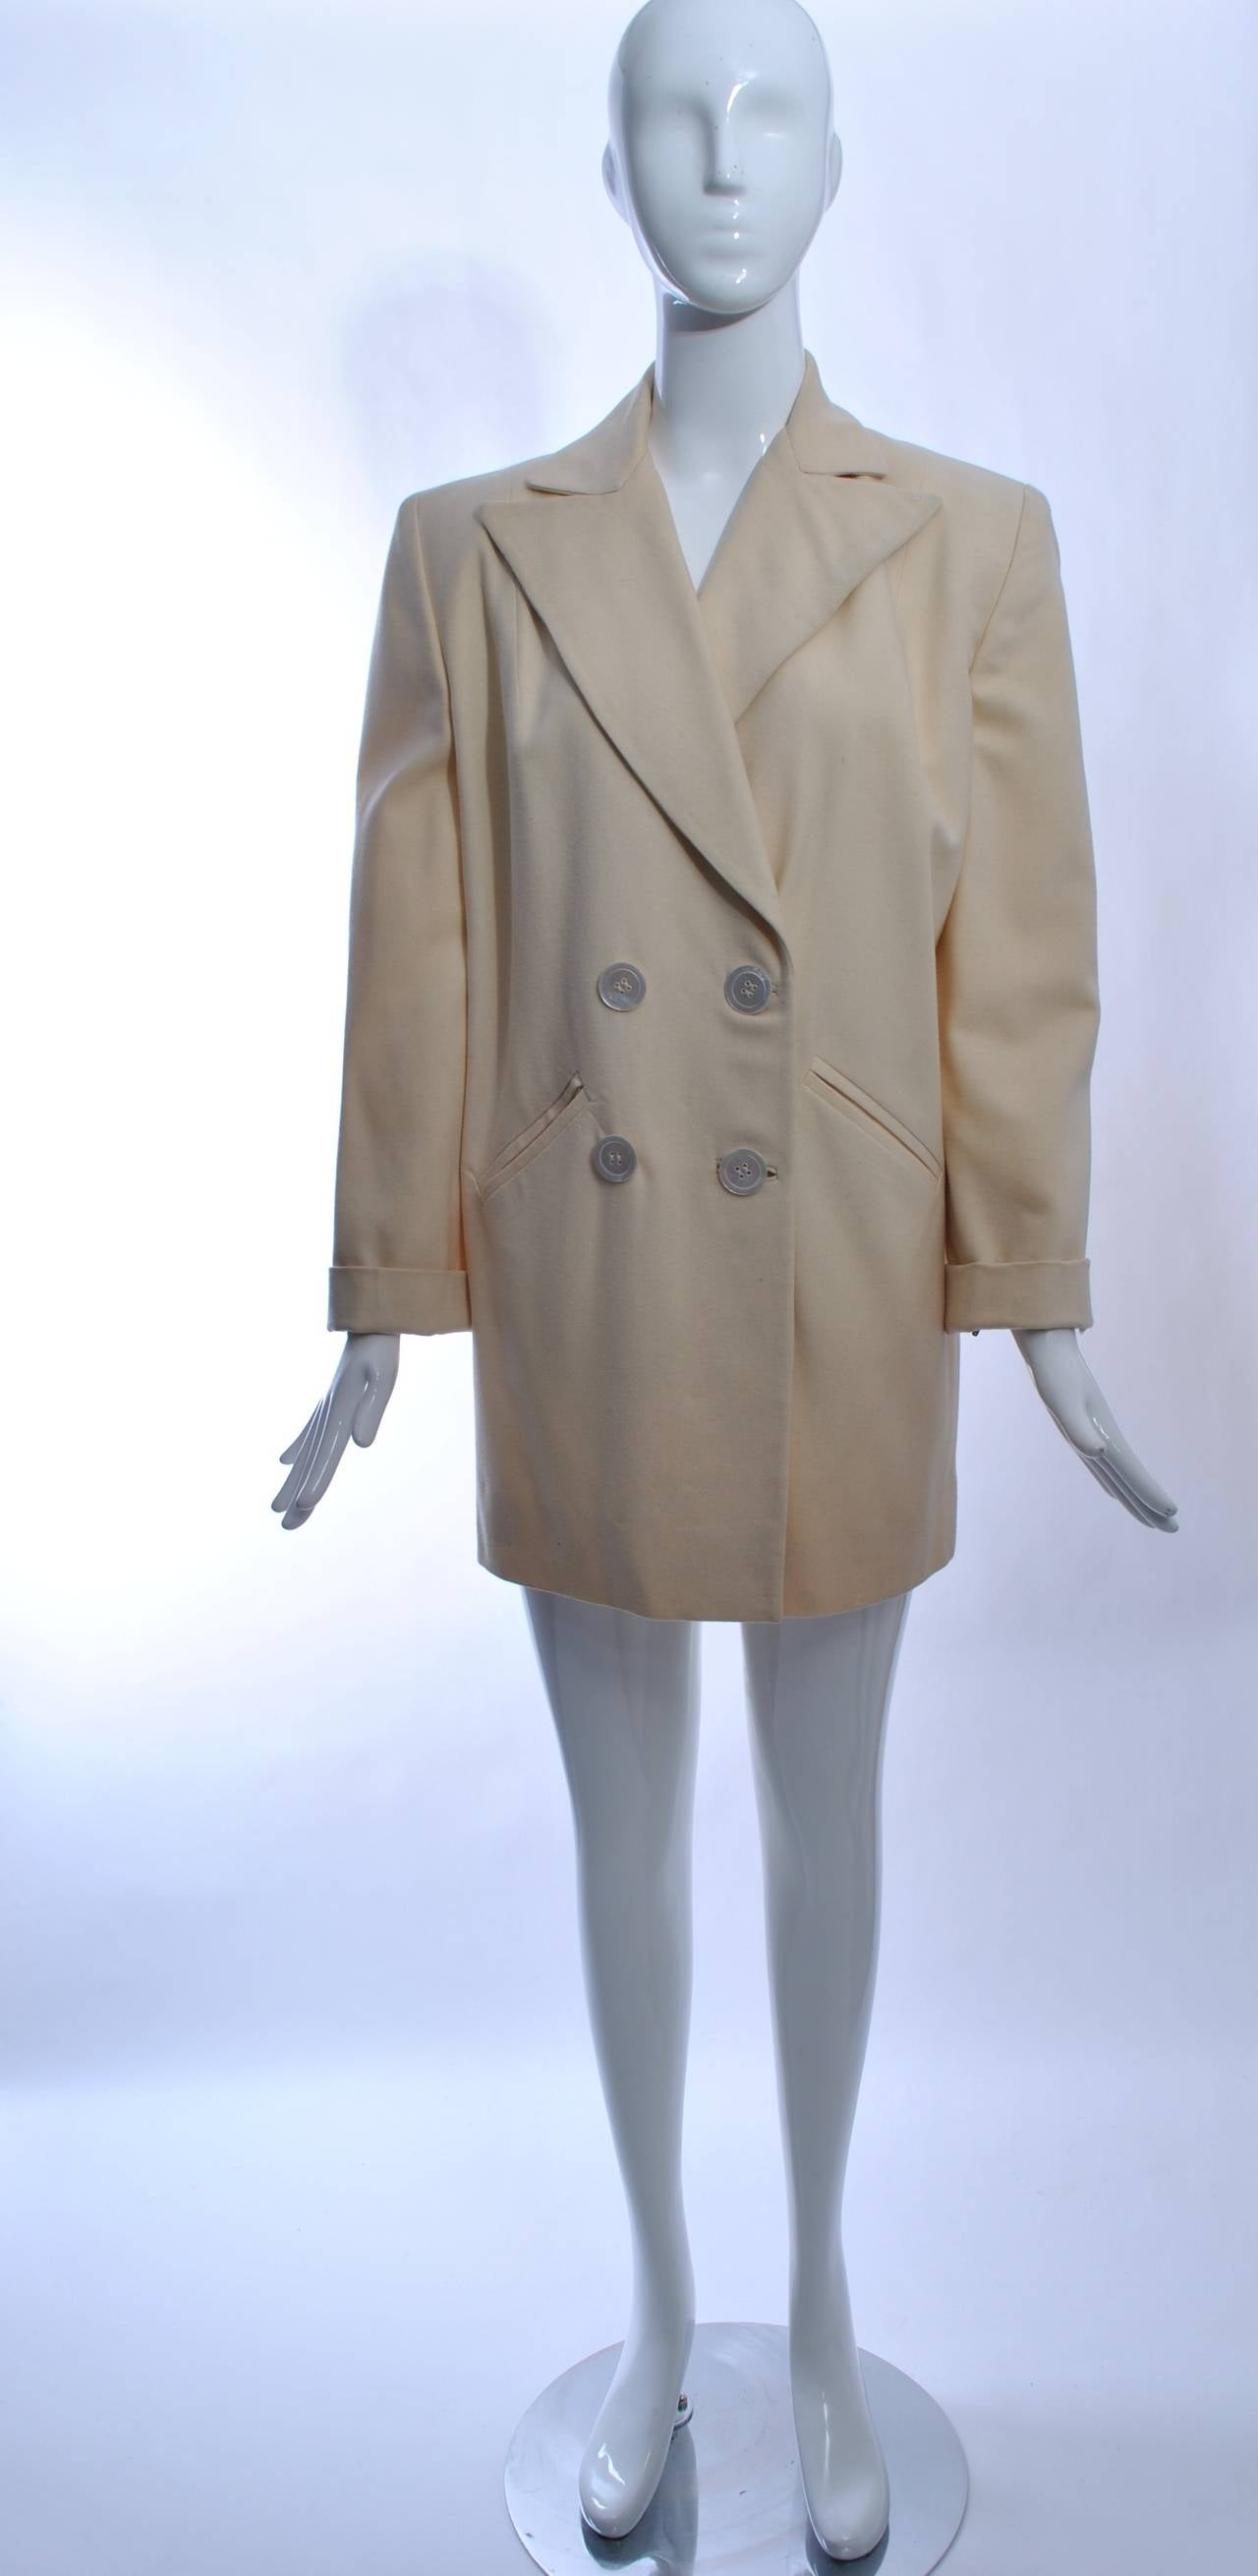 Chic 1940s style white wool blazer jacket with wide lapels, pearl double-breasted buttons and a wide back belt that pulls in the excess fabric in back. Other features include slanted, bound pockets, turn-back cuffs and squared shoulders.  Mid-thigh